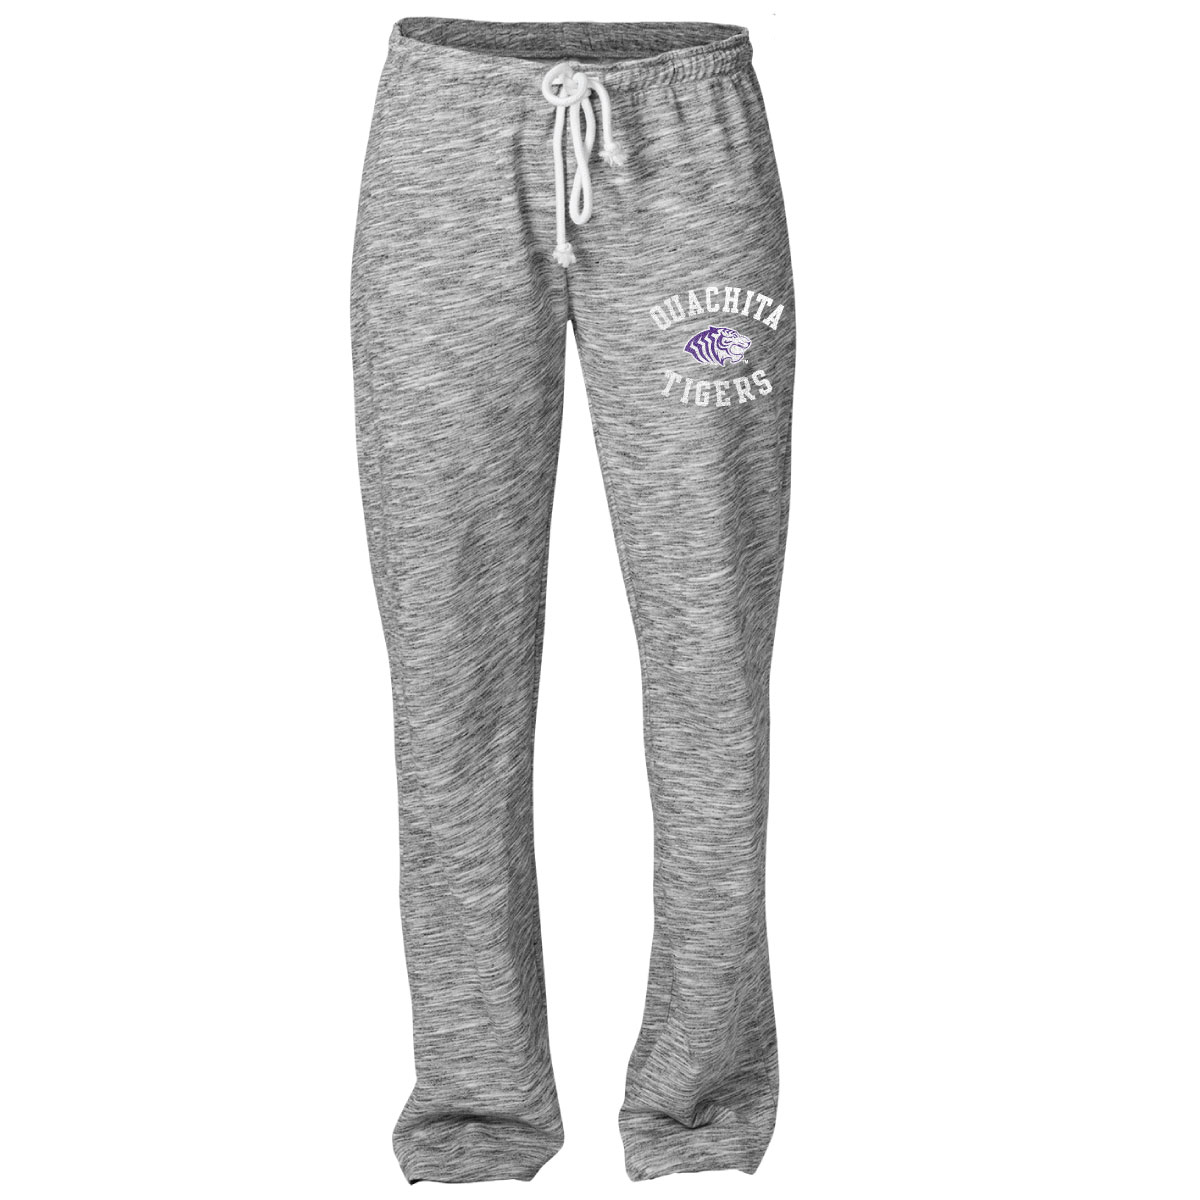 OUACHITA TIGERS HAPPY PANTS